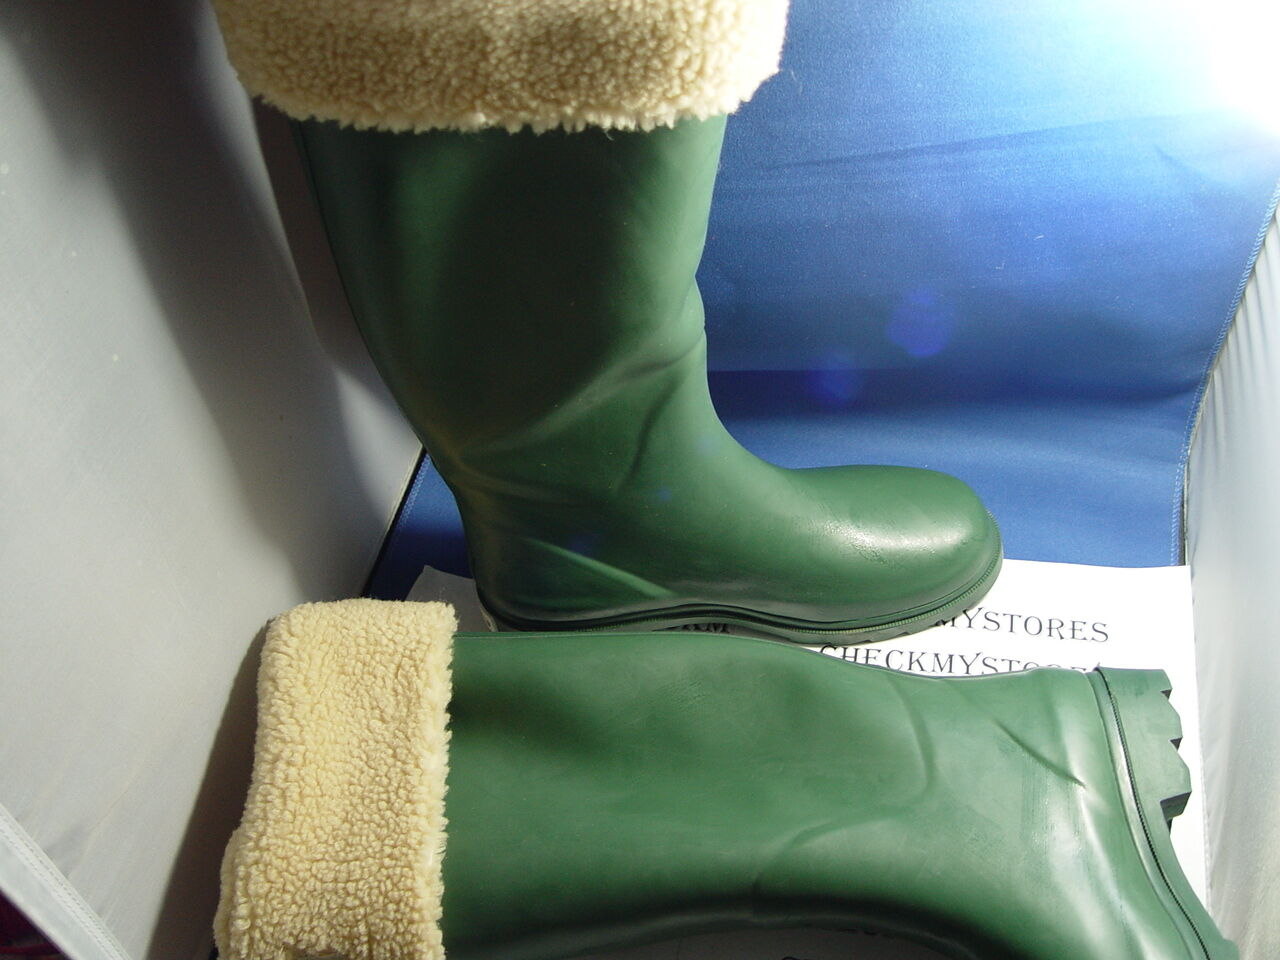 New NIB Bear Paw Lagoon Women's Rain Boot - olive green